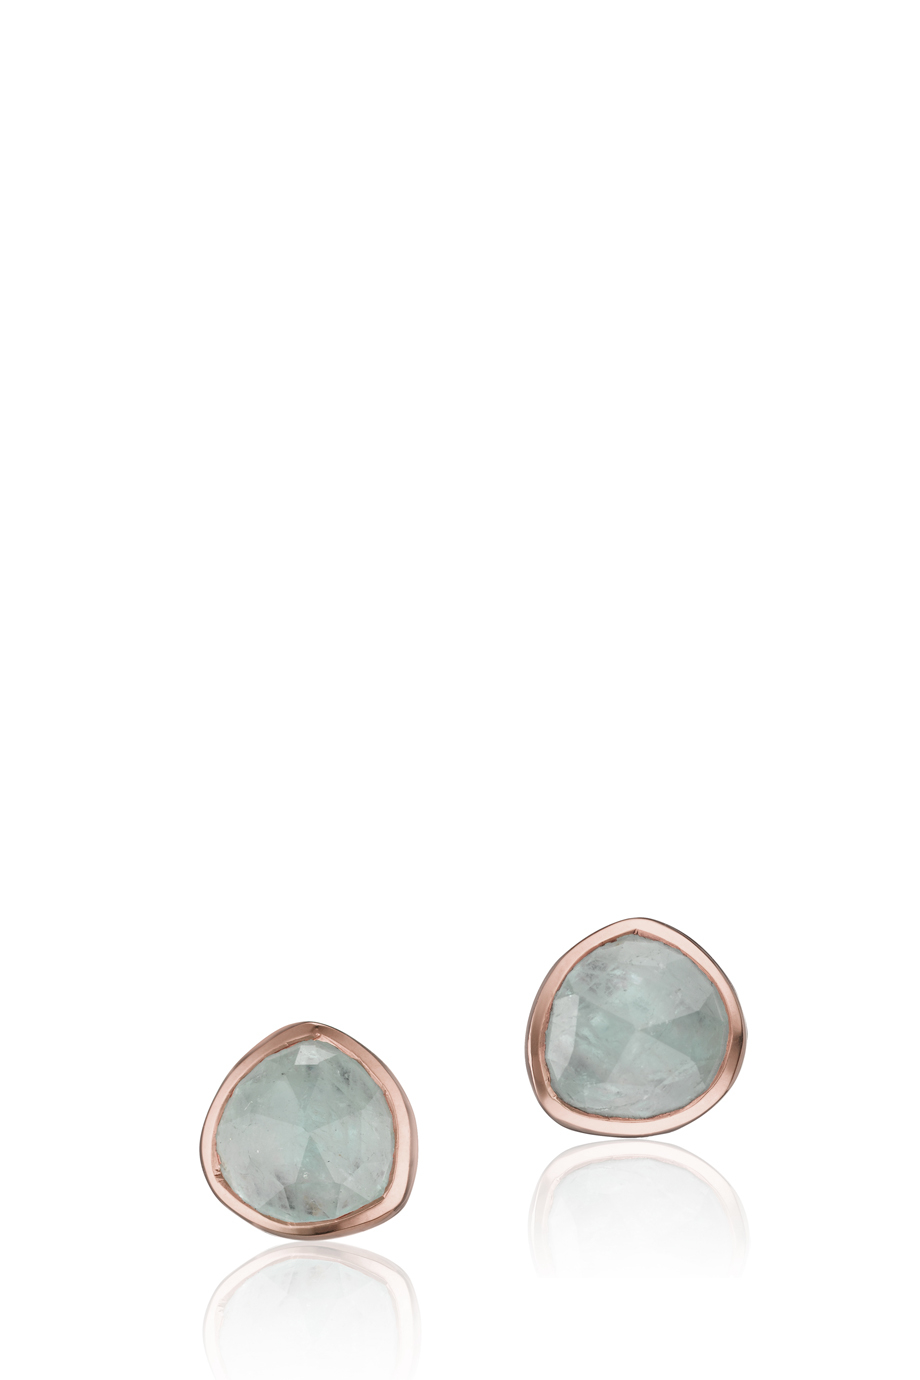 aquamarine at ewa aqua earrings johnlewis main gold com brilliant blue pdp rsp marine white buyewa stud online cut